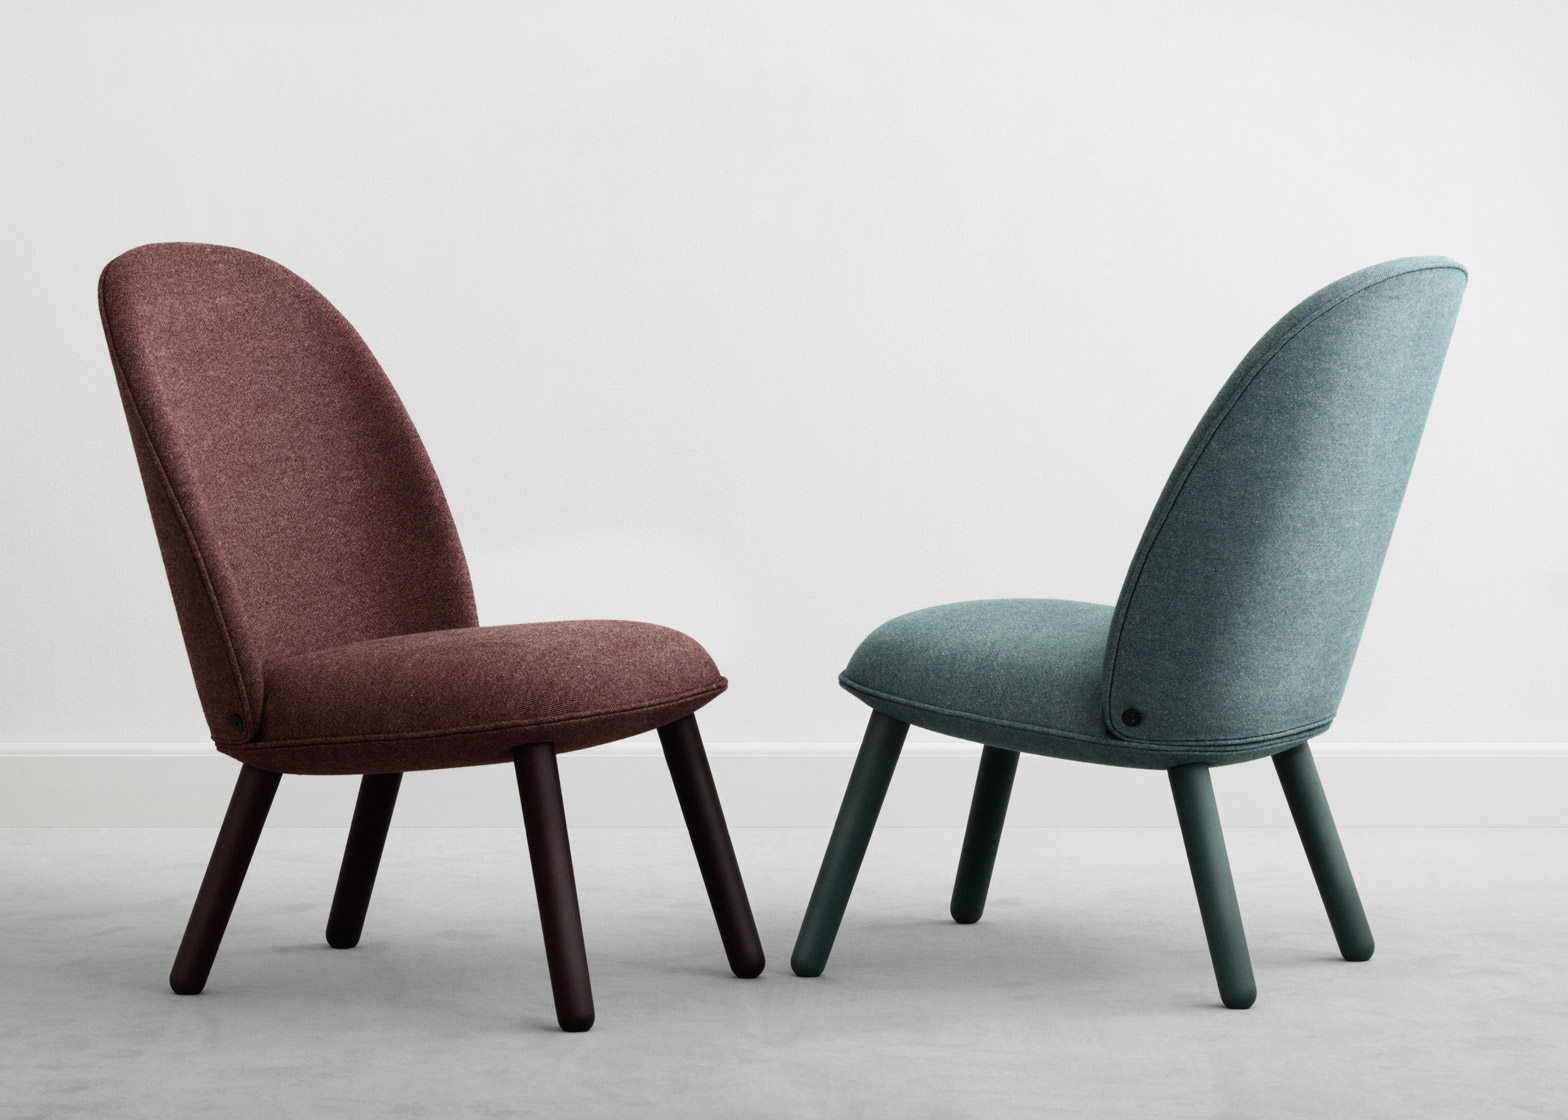 Swell Normann Copenhagen Adds Flat Pack Seating To Collection Machost Co Dining Chair Design Ideas Machostcouk